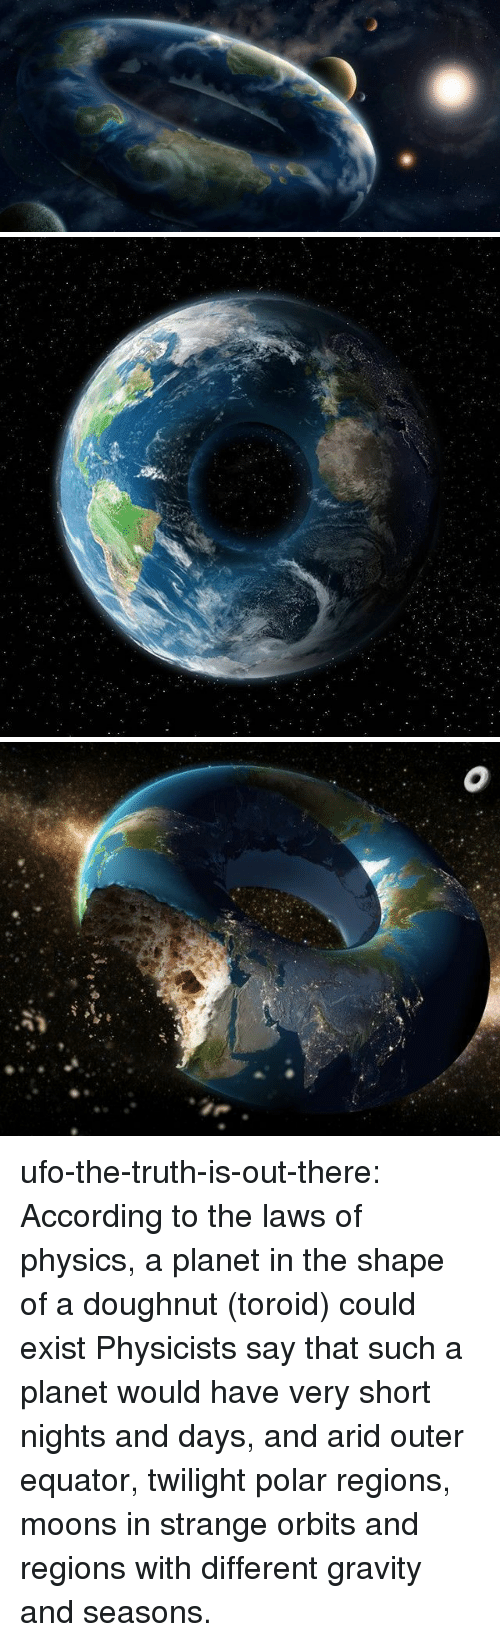 Target, Tumblr, and Blog: ufo-the-truth-is-out-there: According to the laws of physics, a planet in the shape of a doughnut (toroid) could exist Physicists say that such a planet would have very short nights and days, and arid outer equator, twilight polar regions, moons in strange orbits and regions with different gravity and seasons.